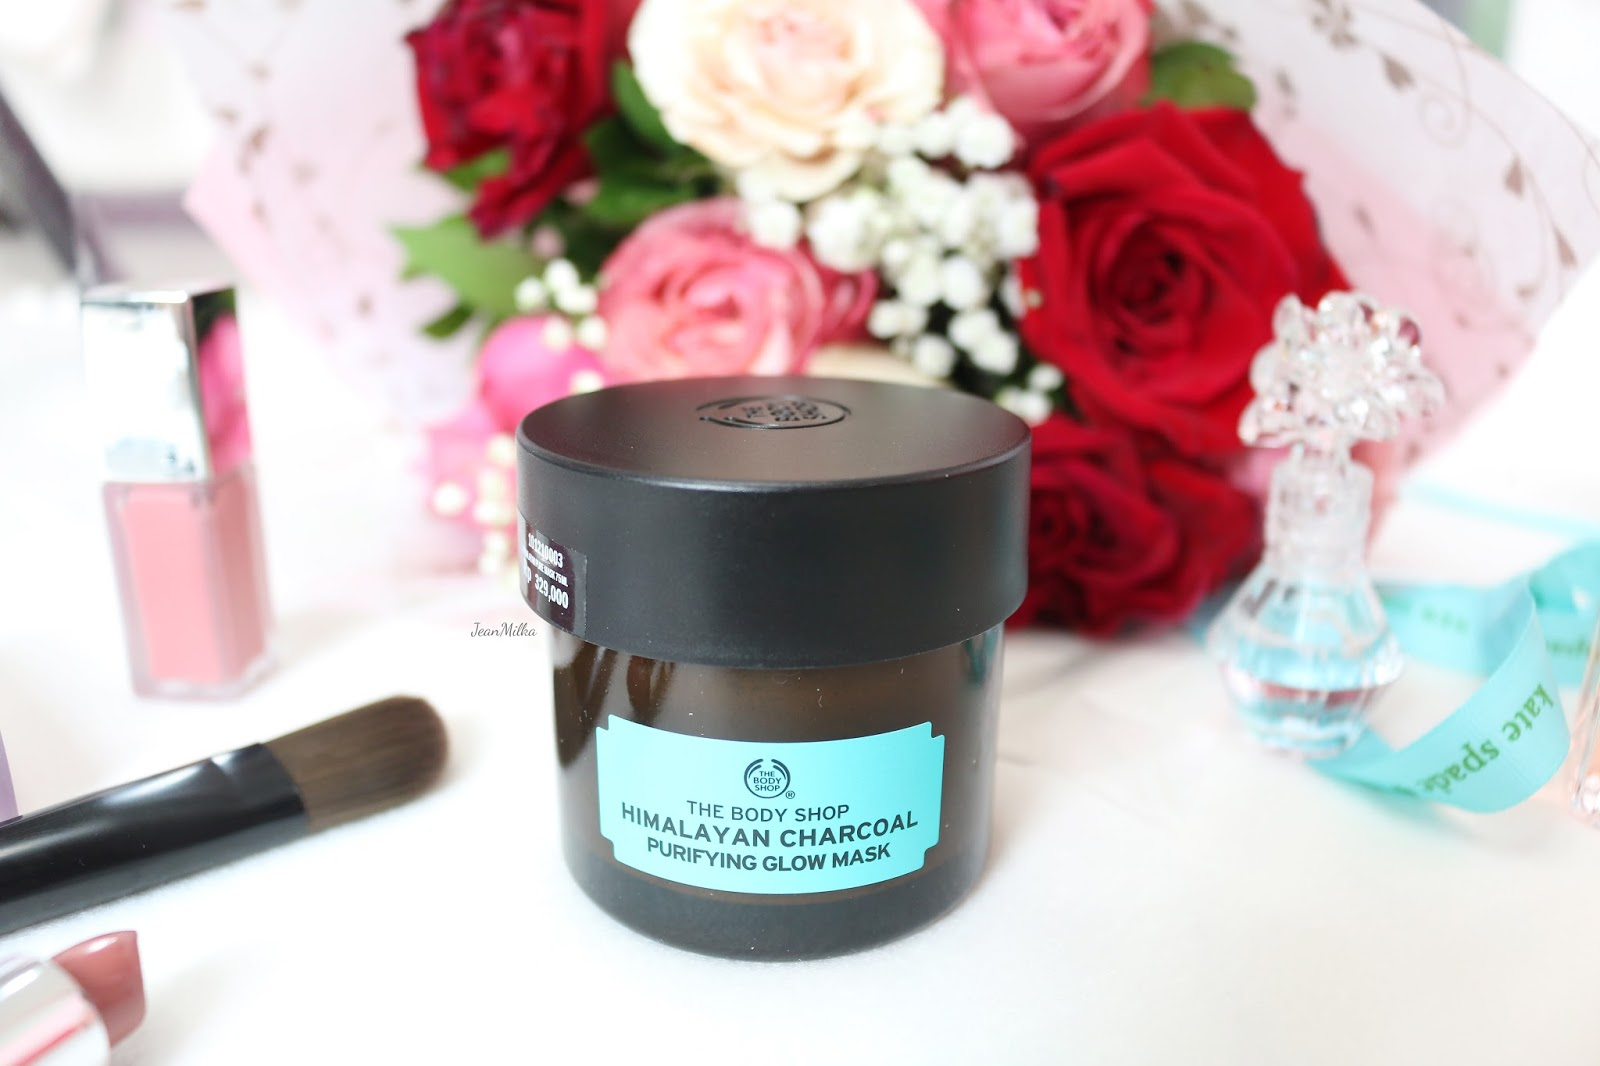 the body shop, body shop, superfood mask, the body shop mask, the body shop superfood mask, the body shop skincare, skincare, mask, masker, masker superfood, masker wajah, face mask, new face mask, review, product review, himalayan charcoal, himalayan charcoal purifying glow mask